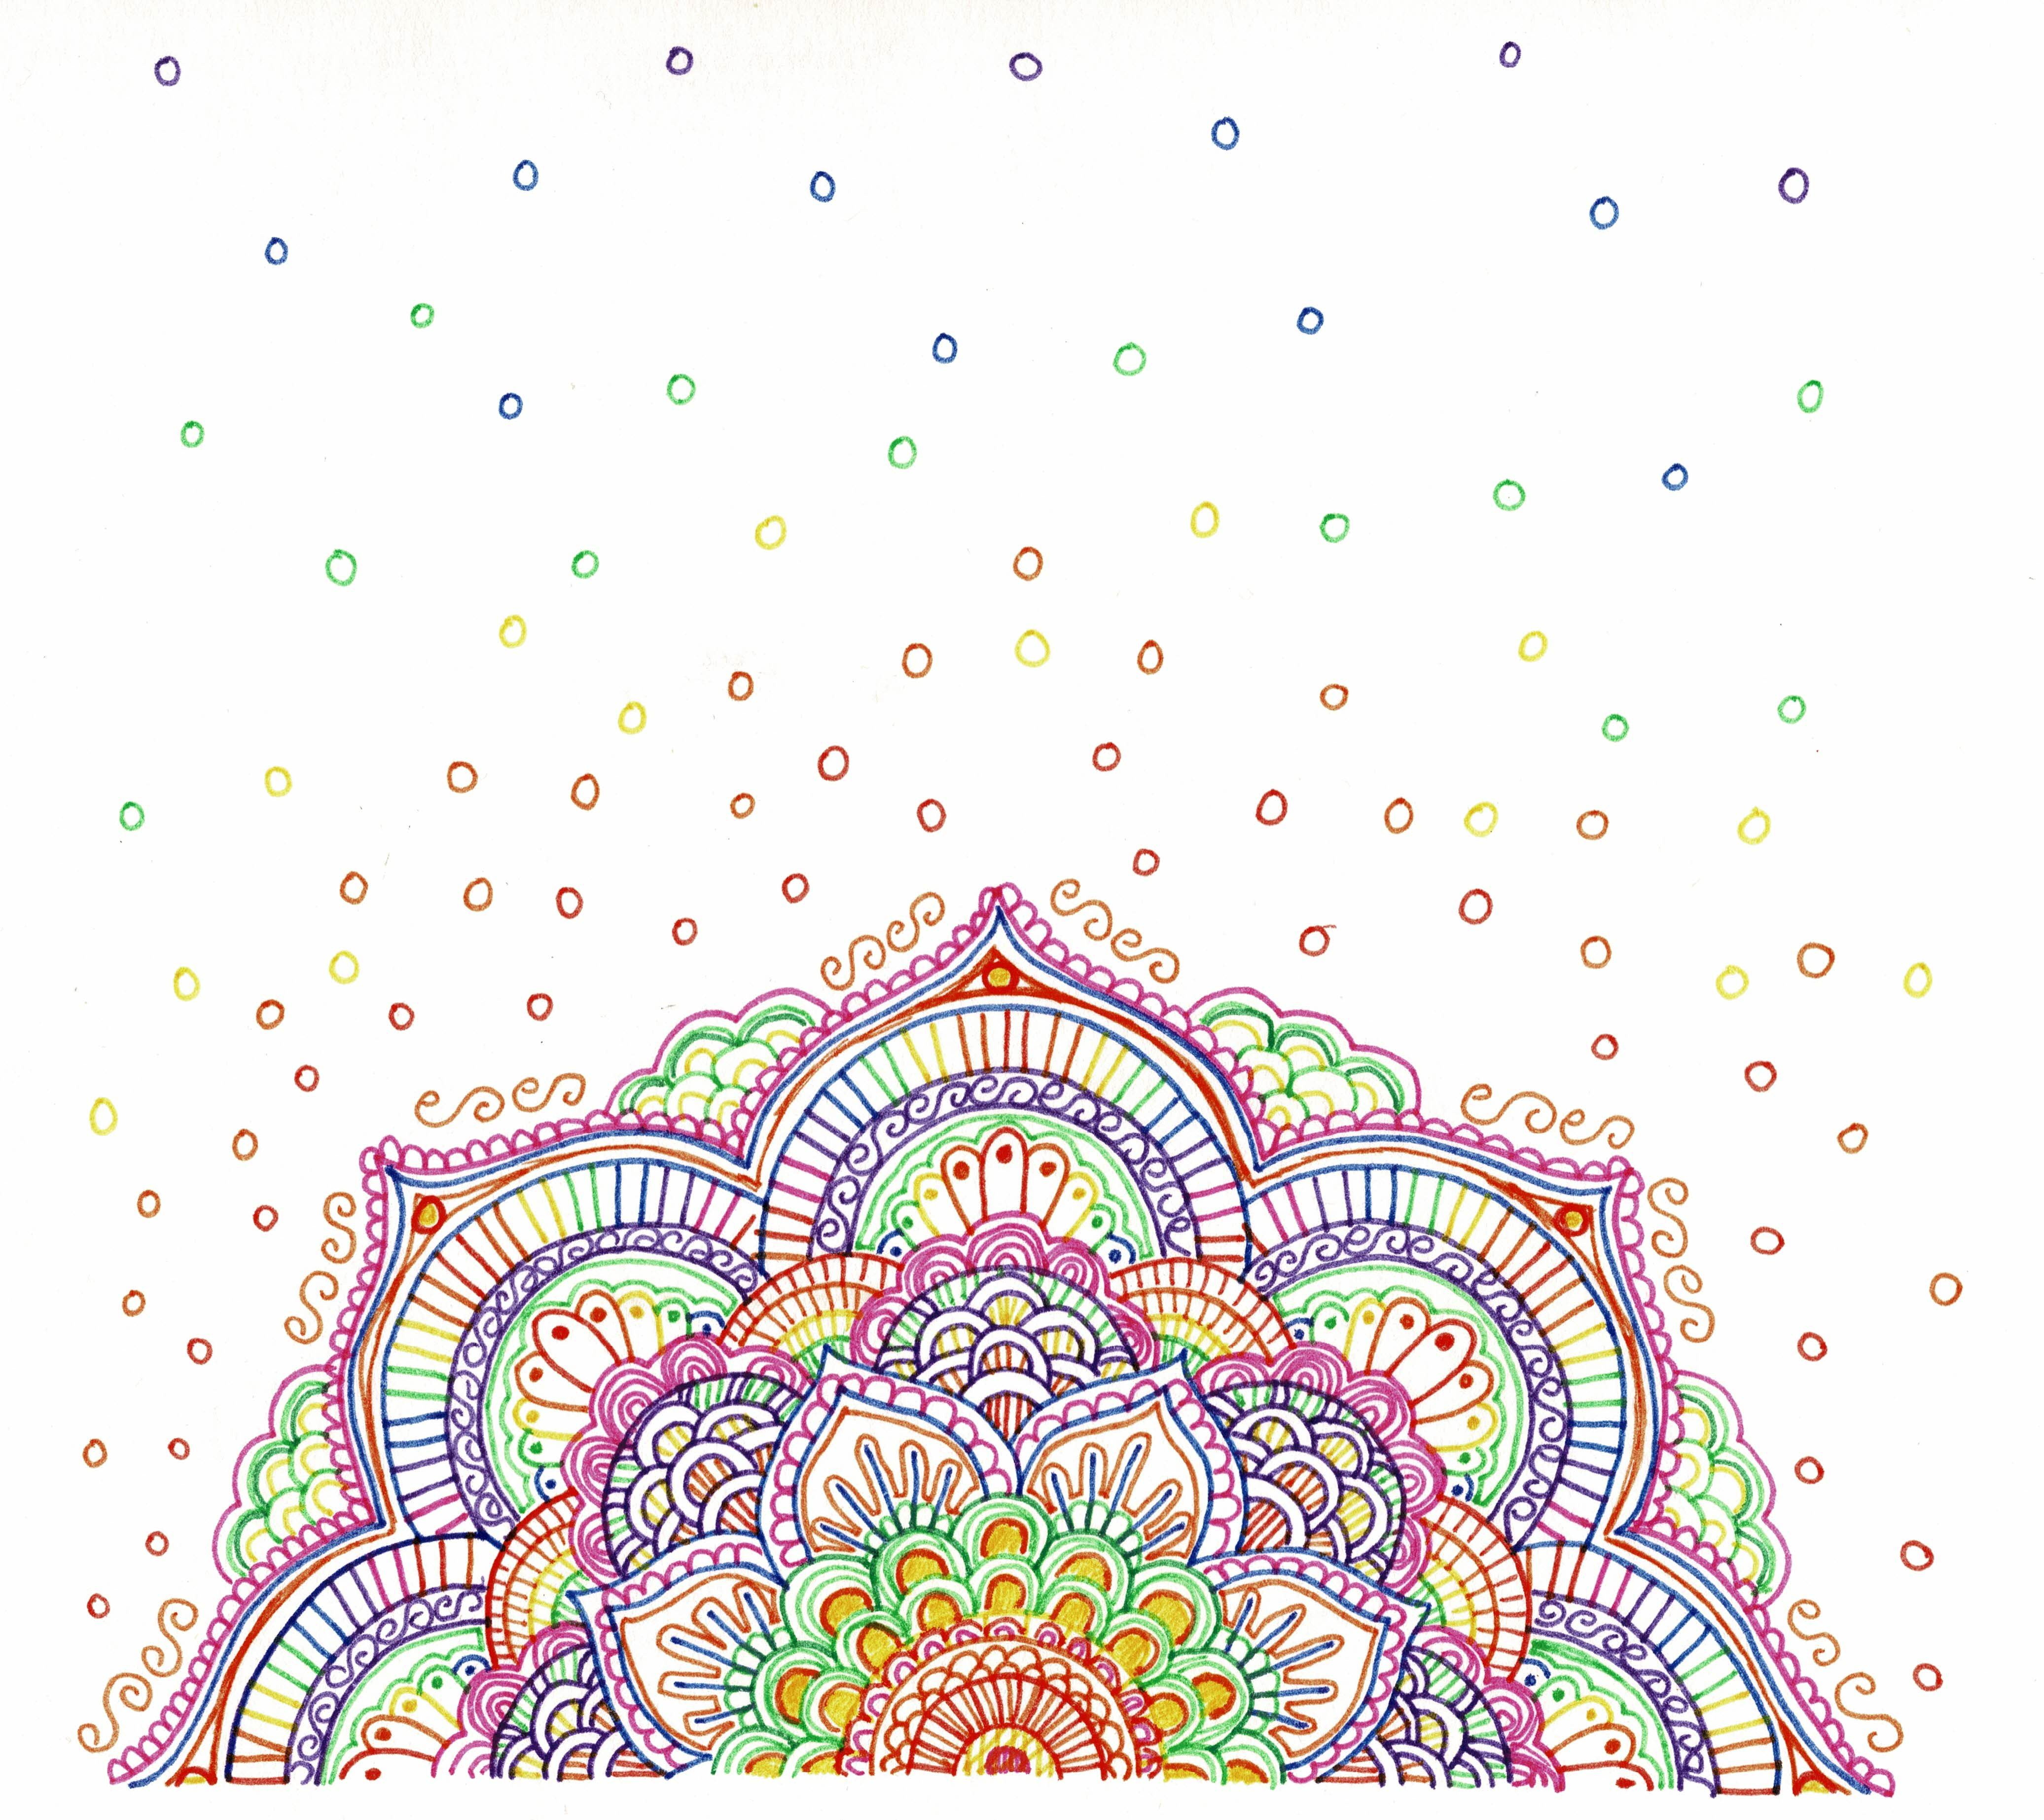 Stabilo Point 88 Drawing With Coloured Fineliners By Sophie Knight